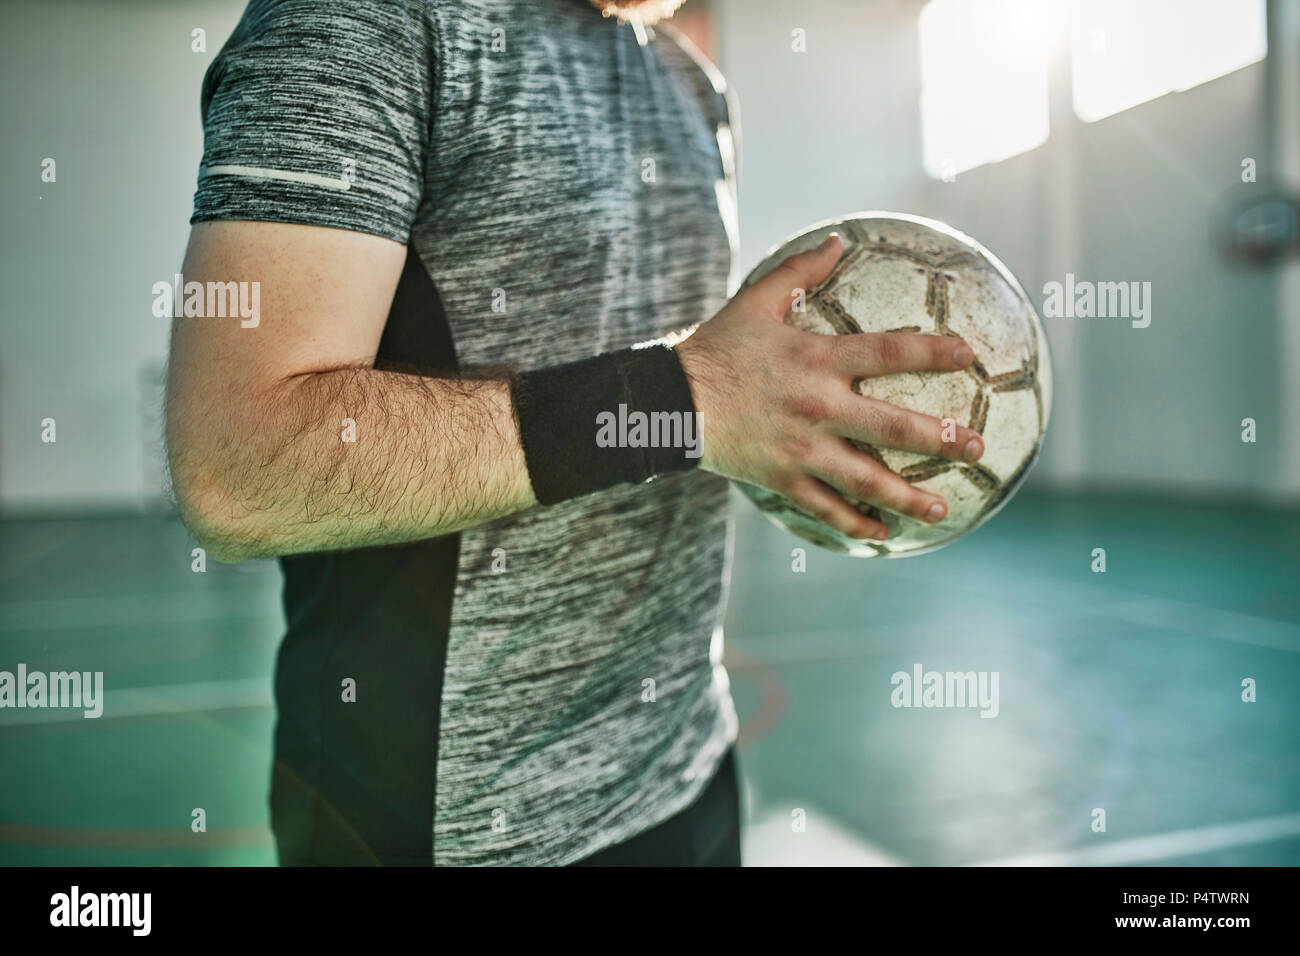 Close-up of indoor soccer player holding the ball - Stock Image